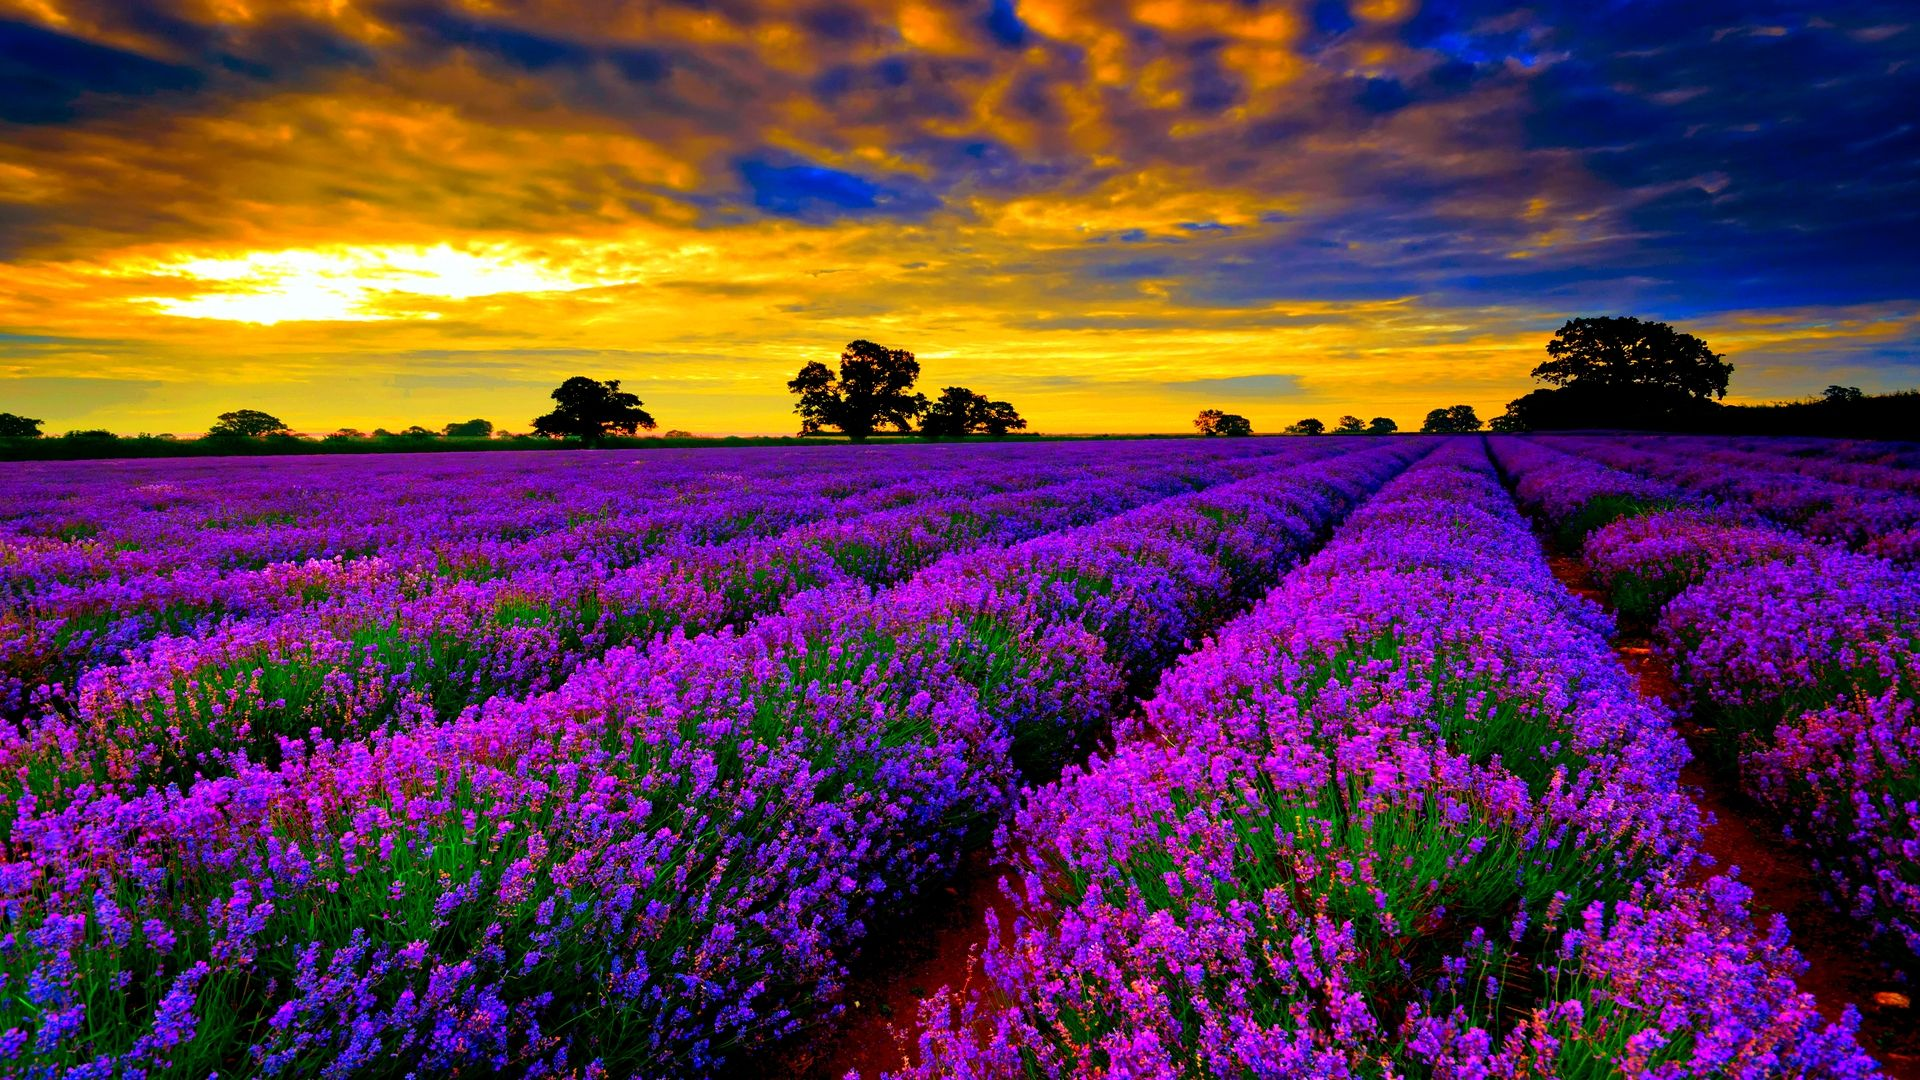 Most Beautiful Field Of Lavender Flowers Widescreen Wallpaper